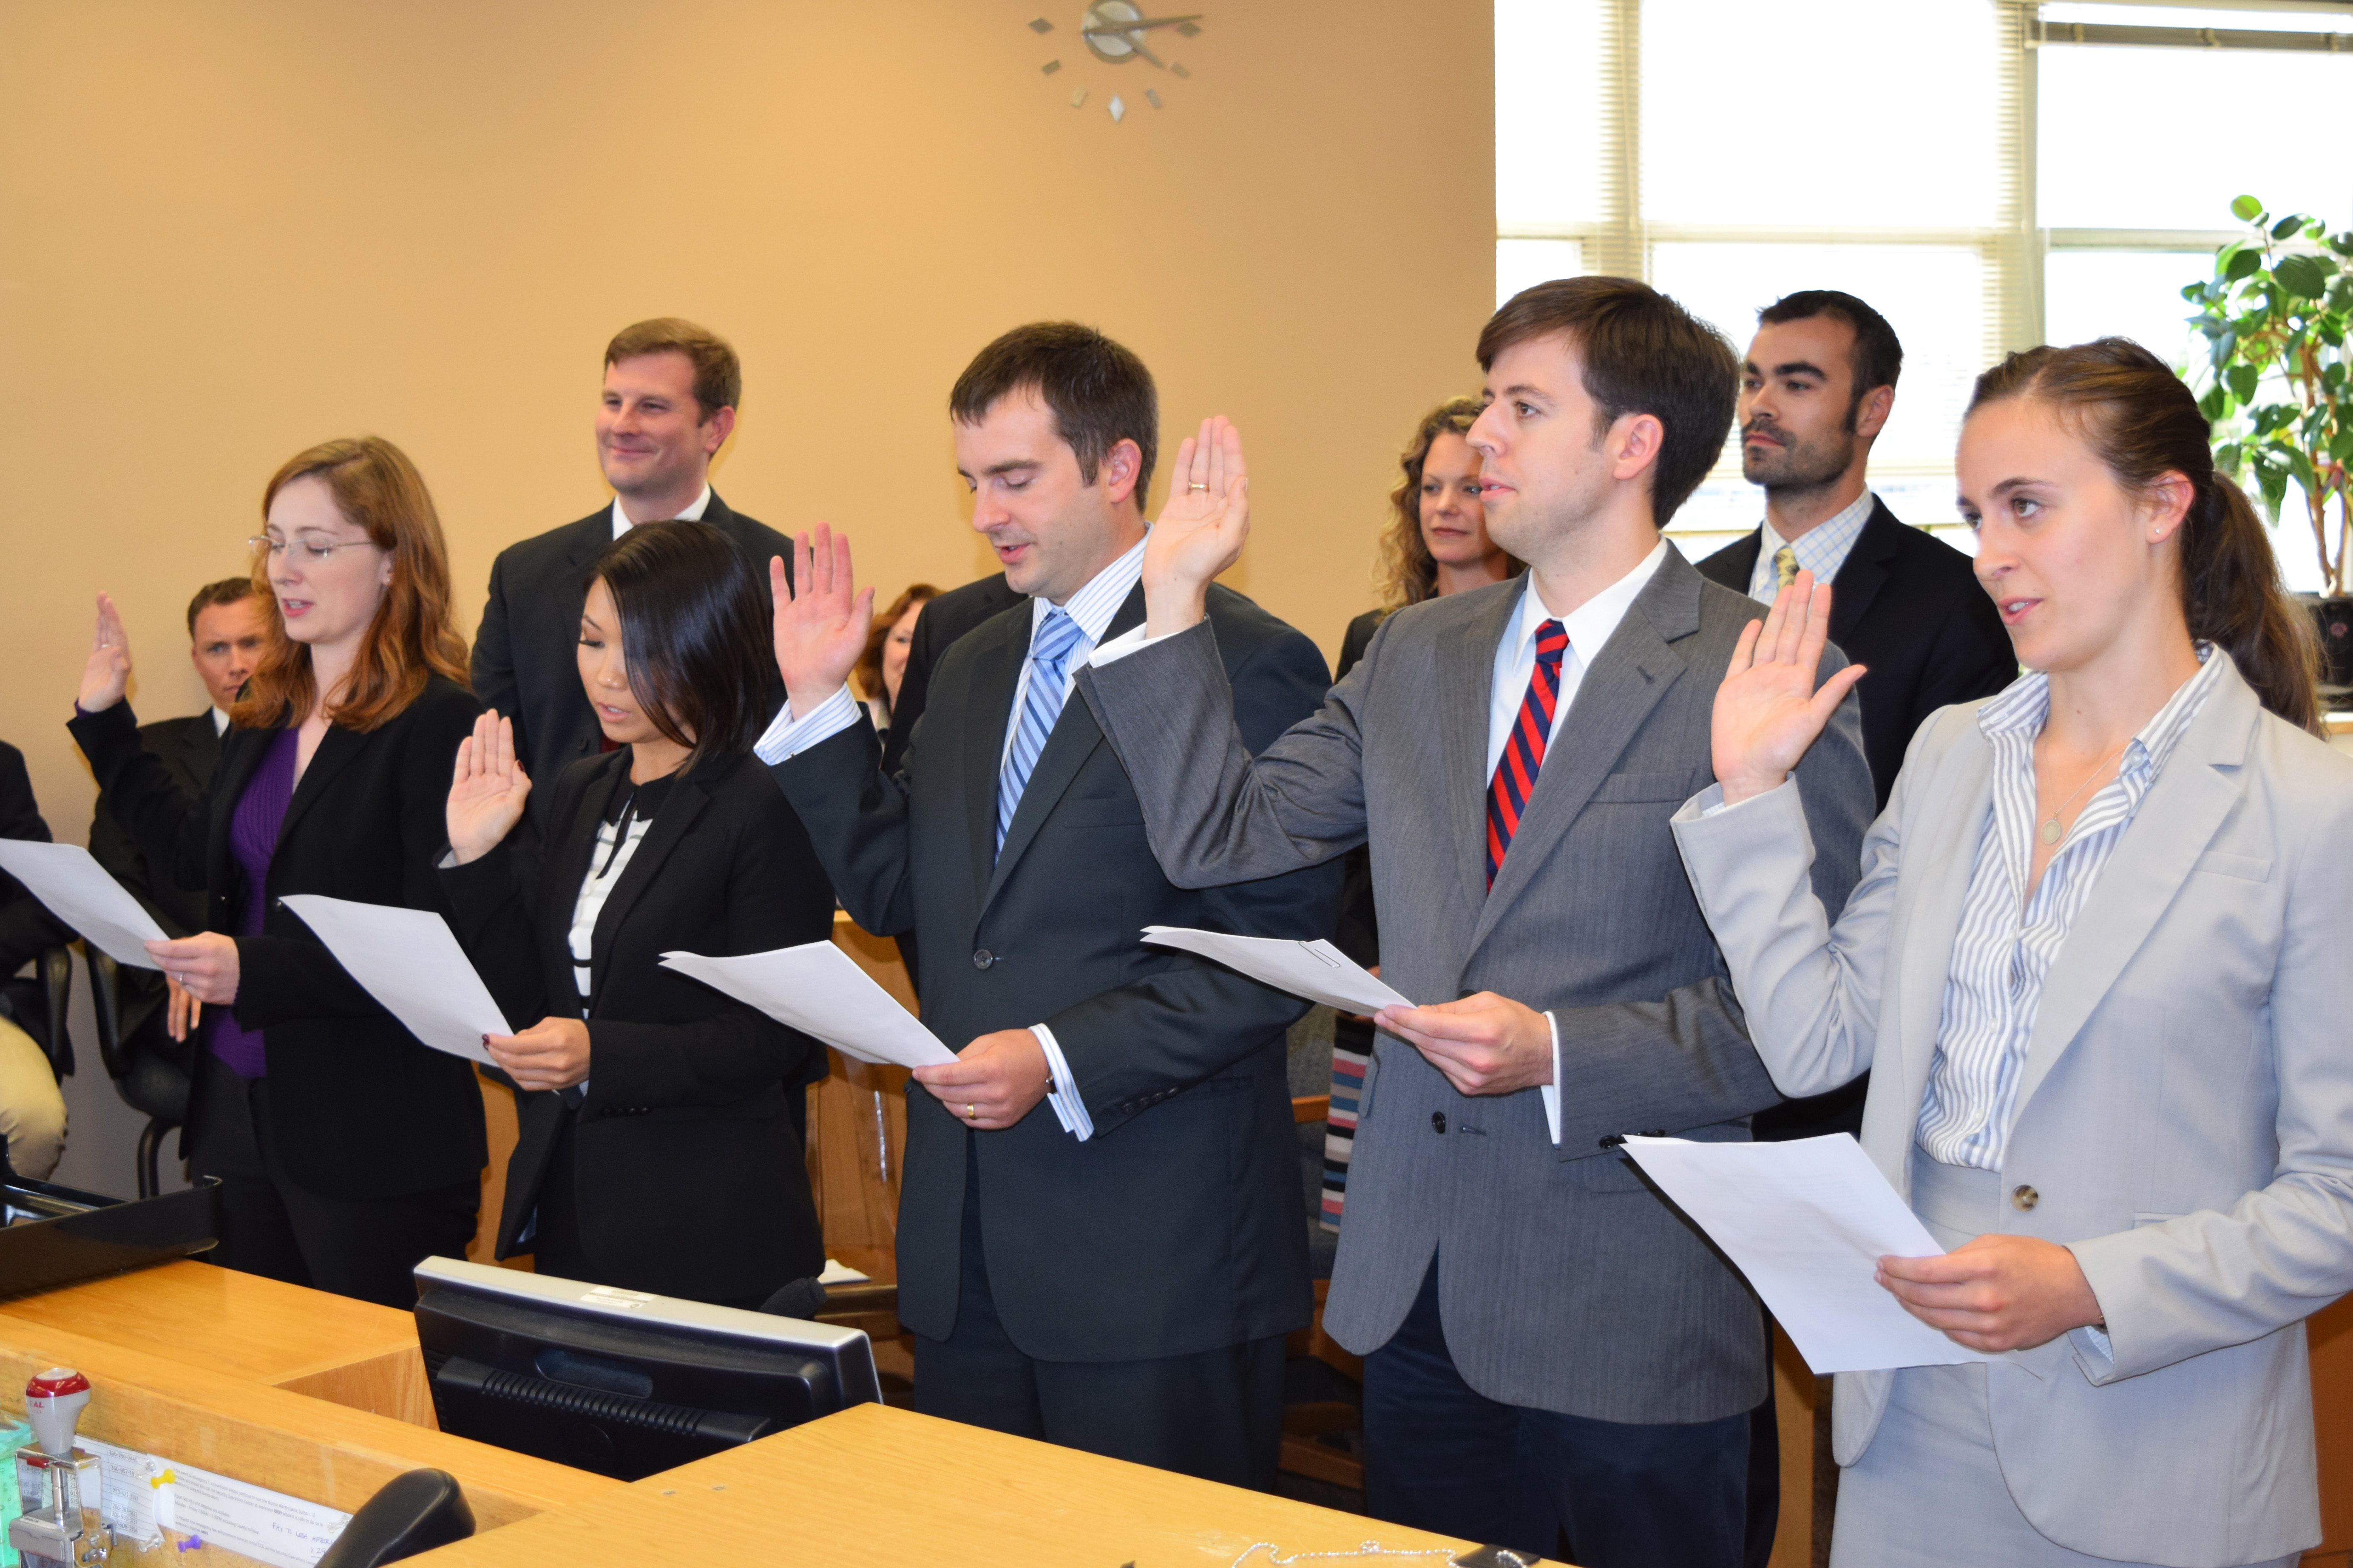 Attorneys swearing-in